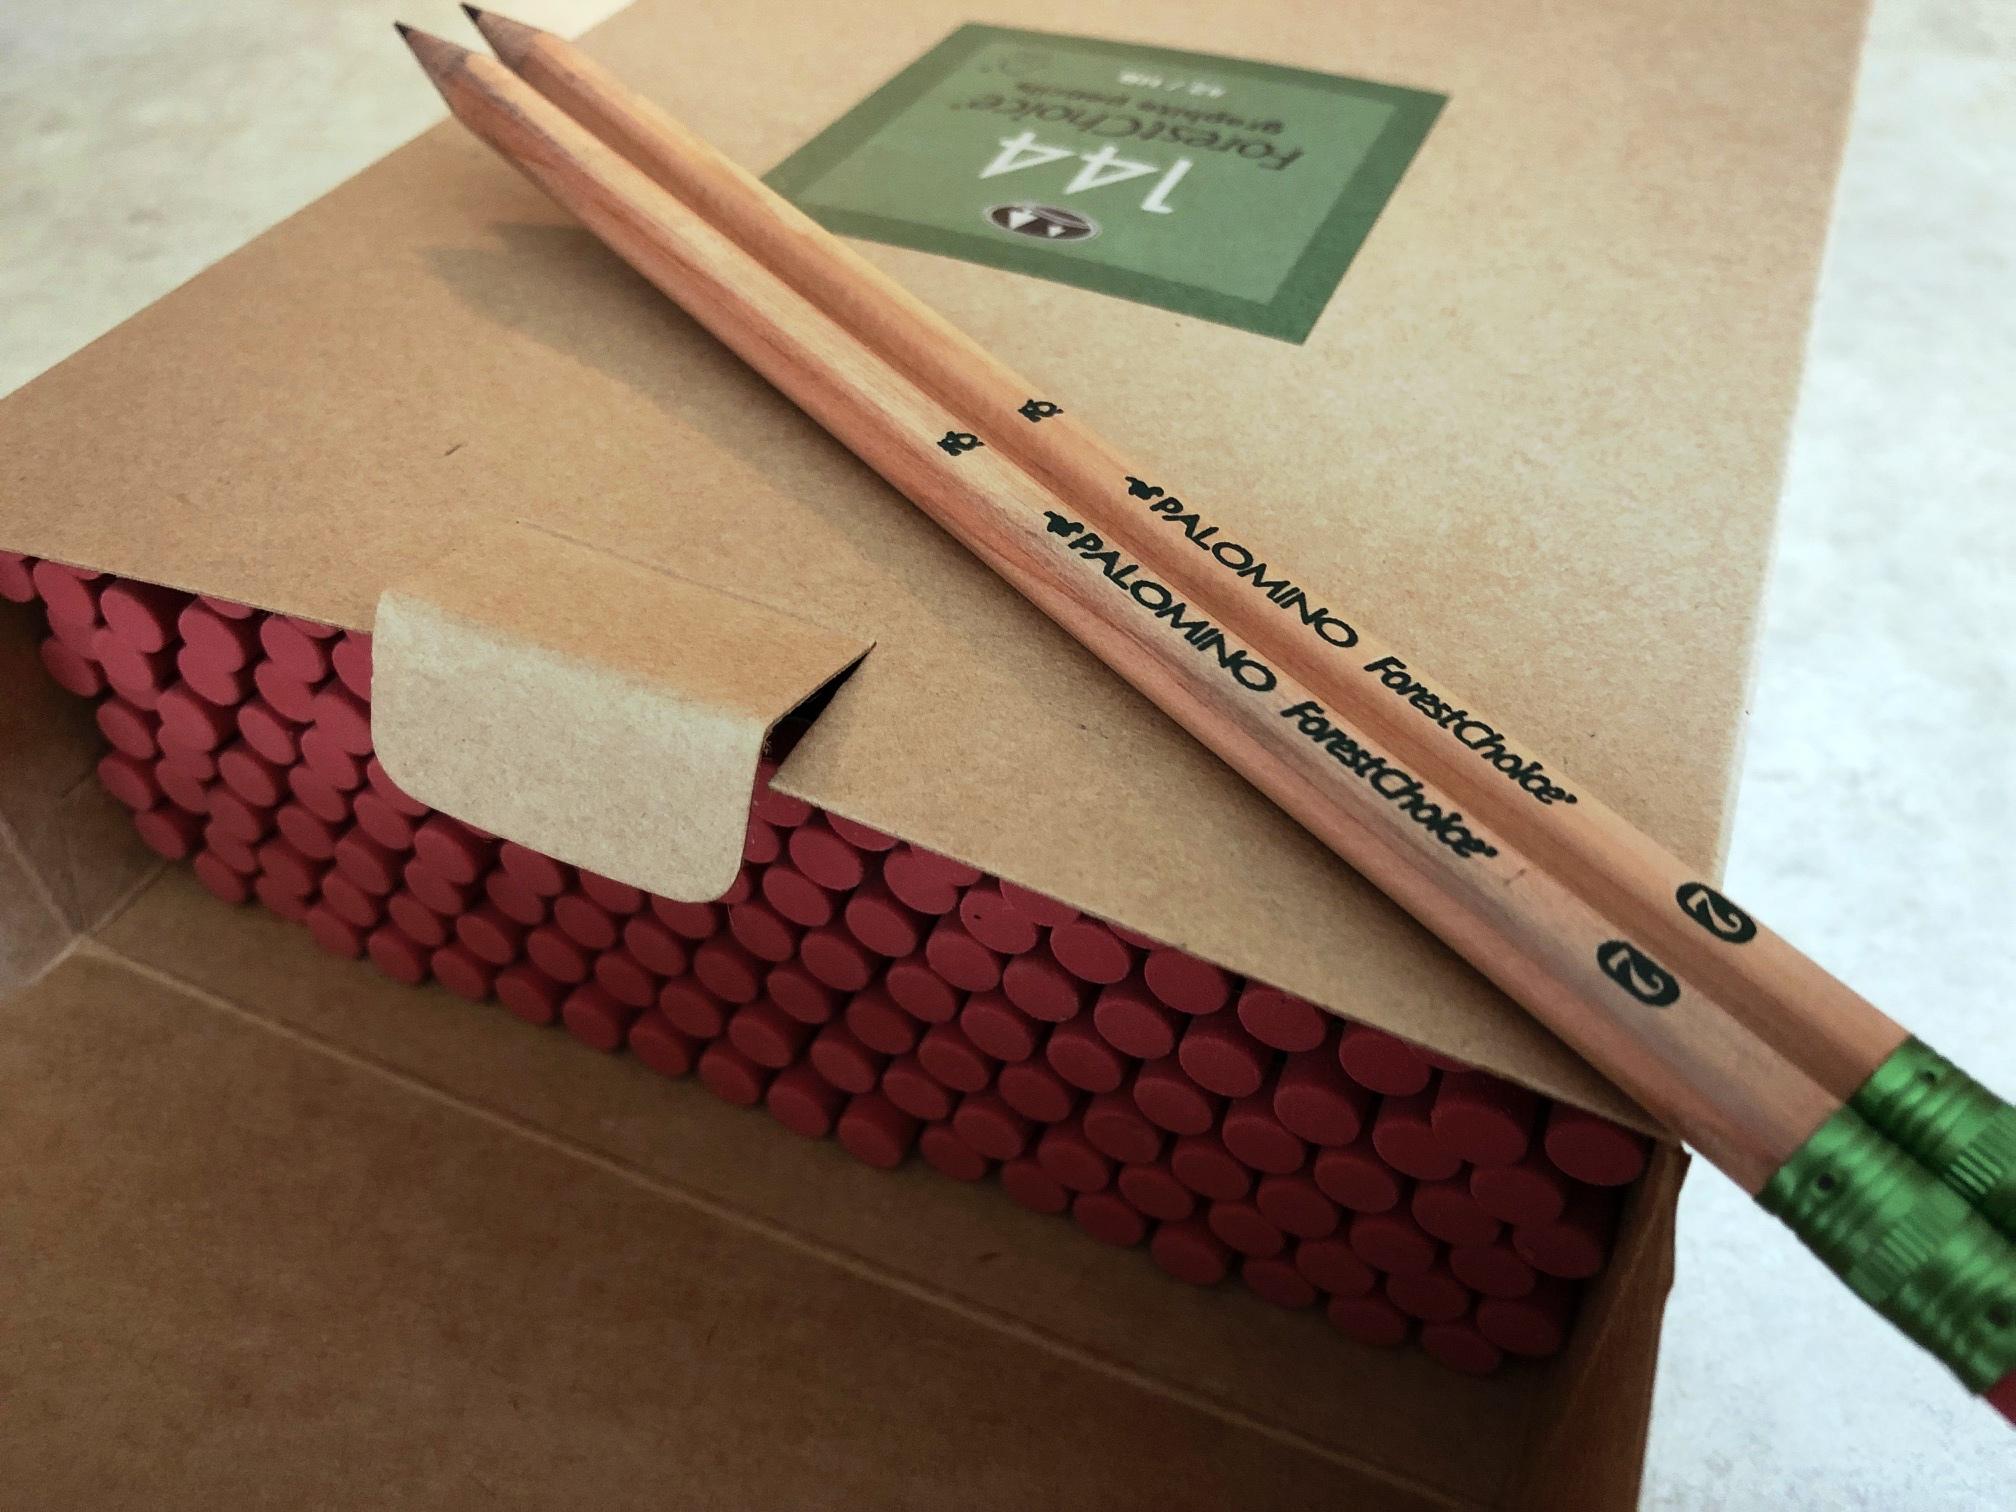 Box of ForestChoice pencils